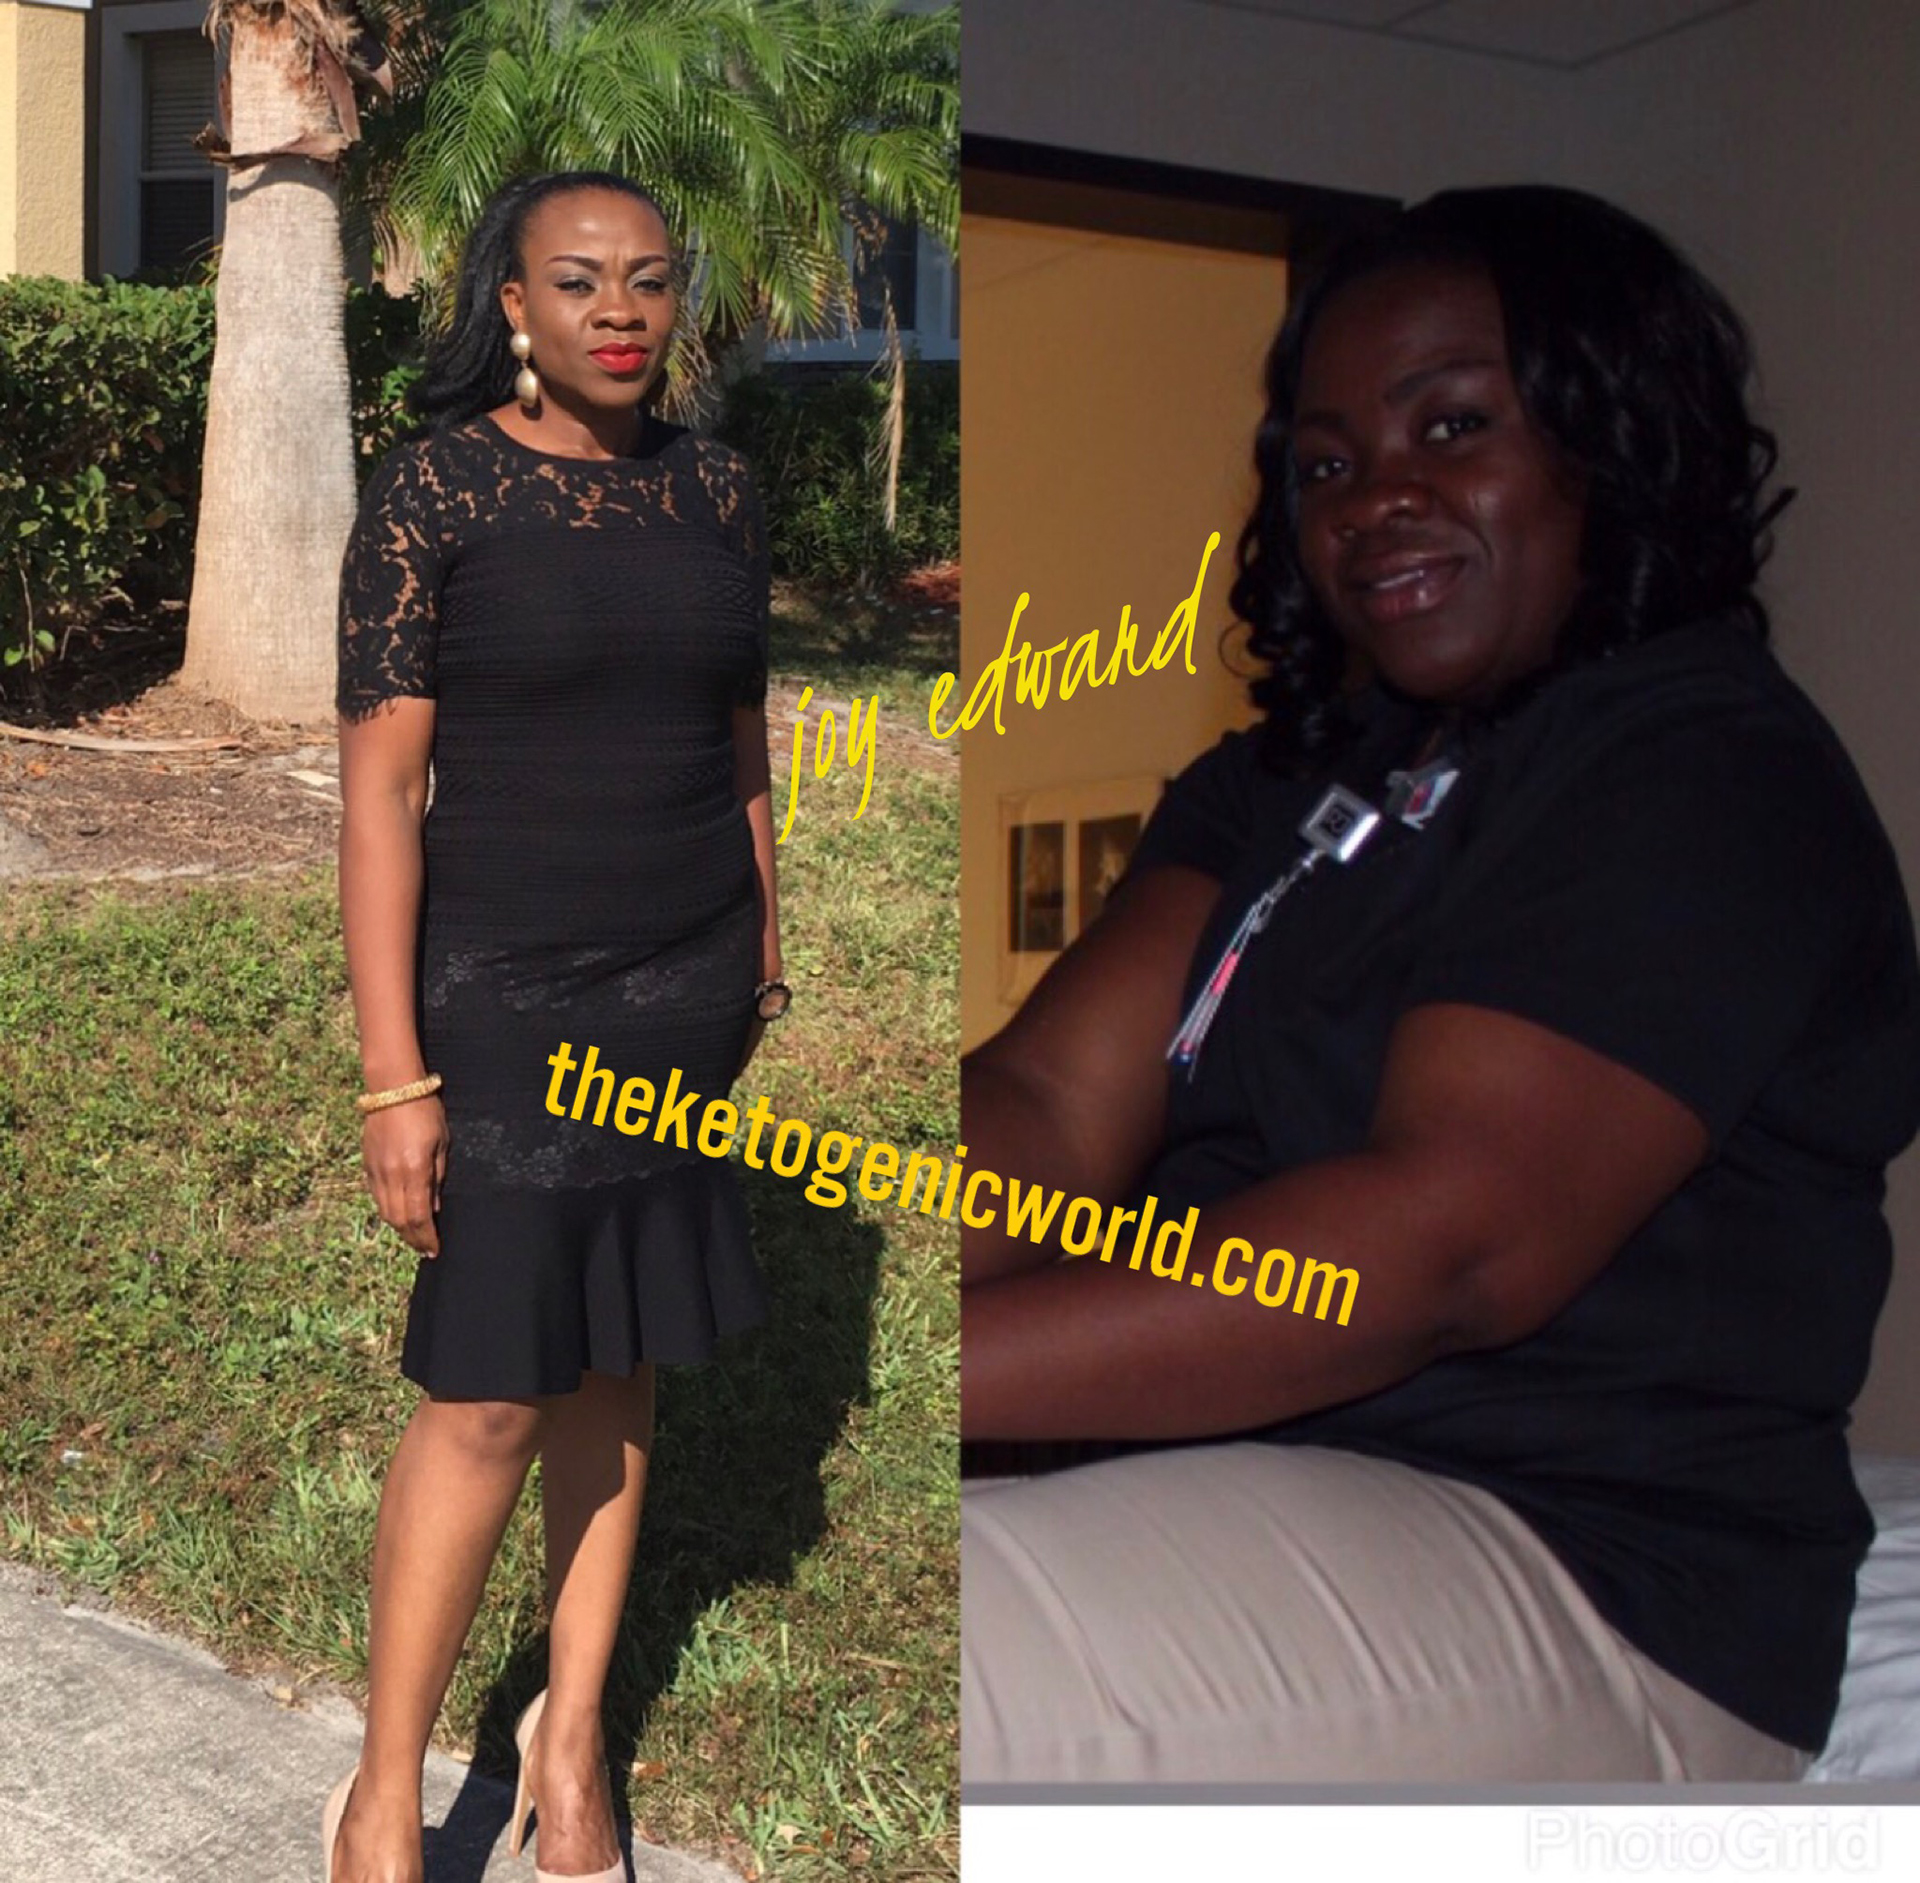 Weight-Loss Success! : )